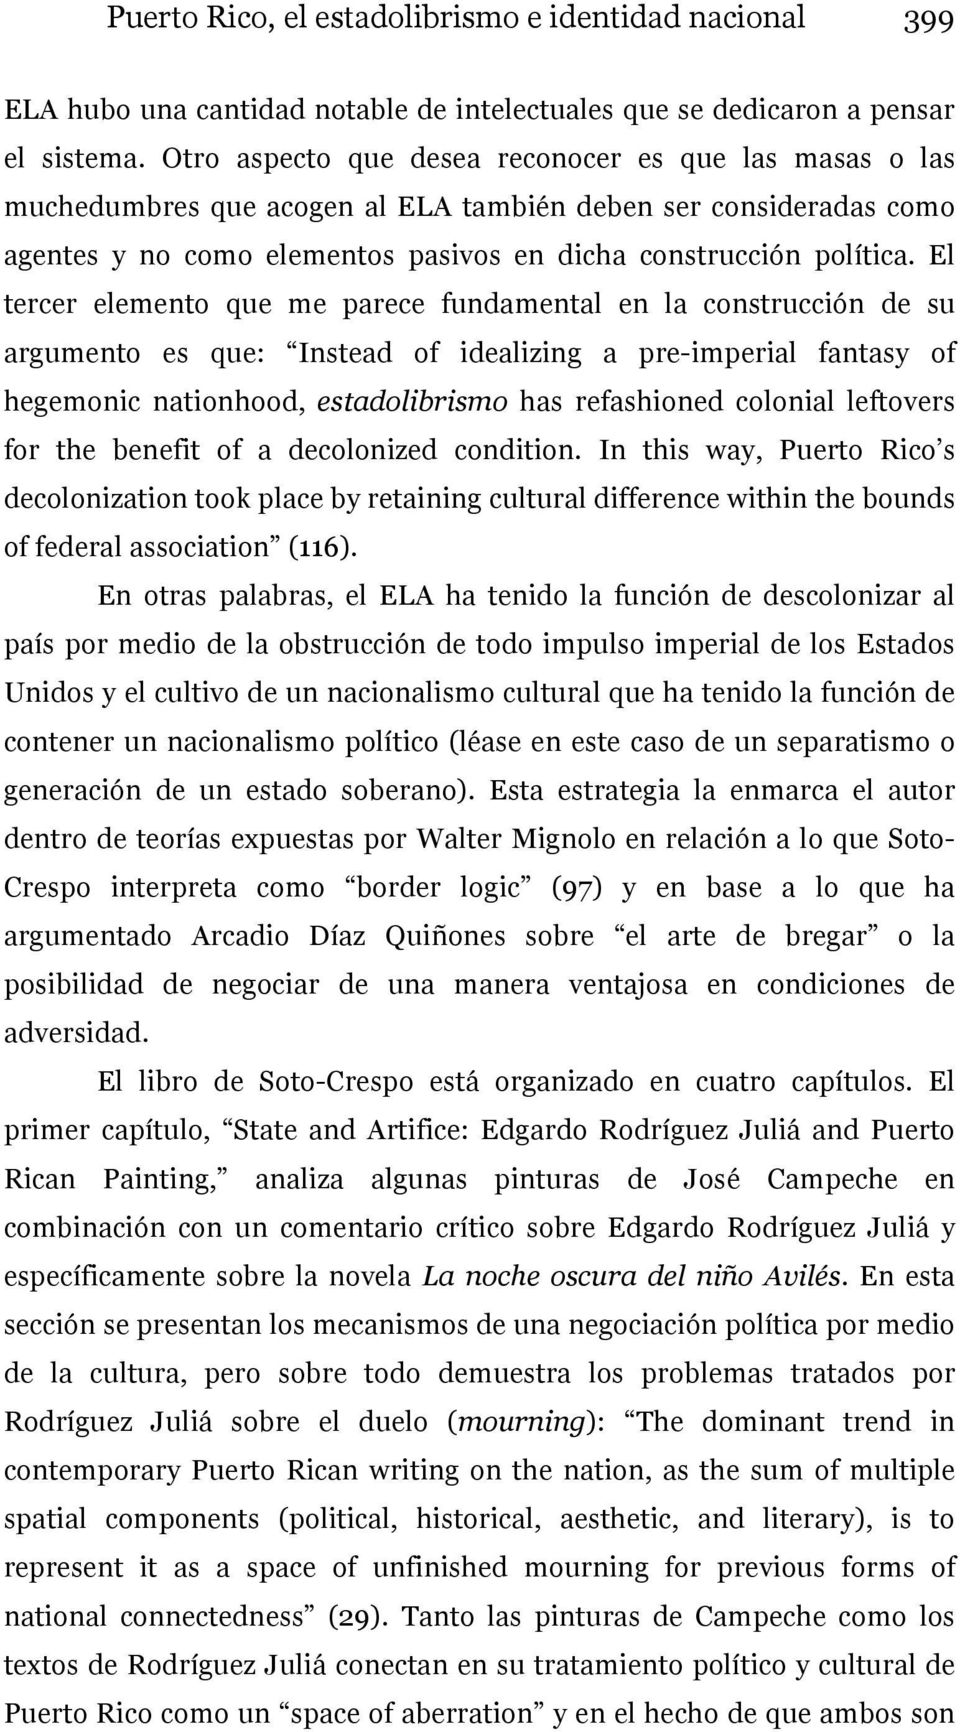 El tercer elemento que me parece fundamental en la construcción de su argumento es que: Instead of idealizing a pre-imperial fantasy of hegemonic nationhood, estadolibrismo has refashioned colonial